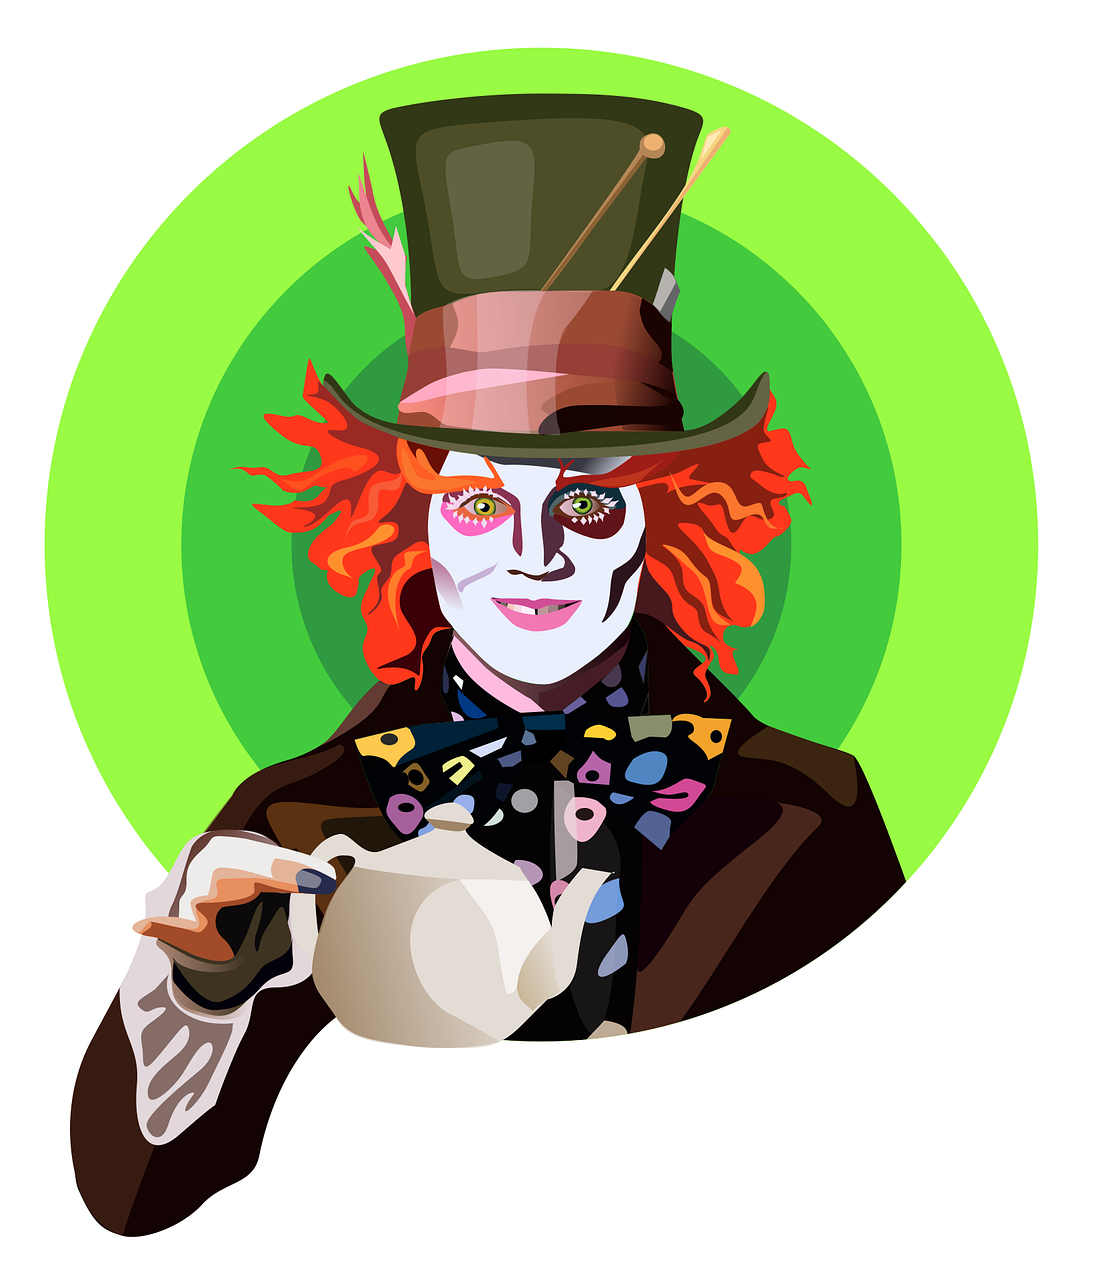 Johnny Depp Mad Hatter Free Vector Graphic On Pixabay